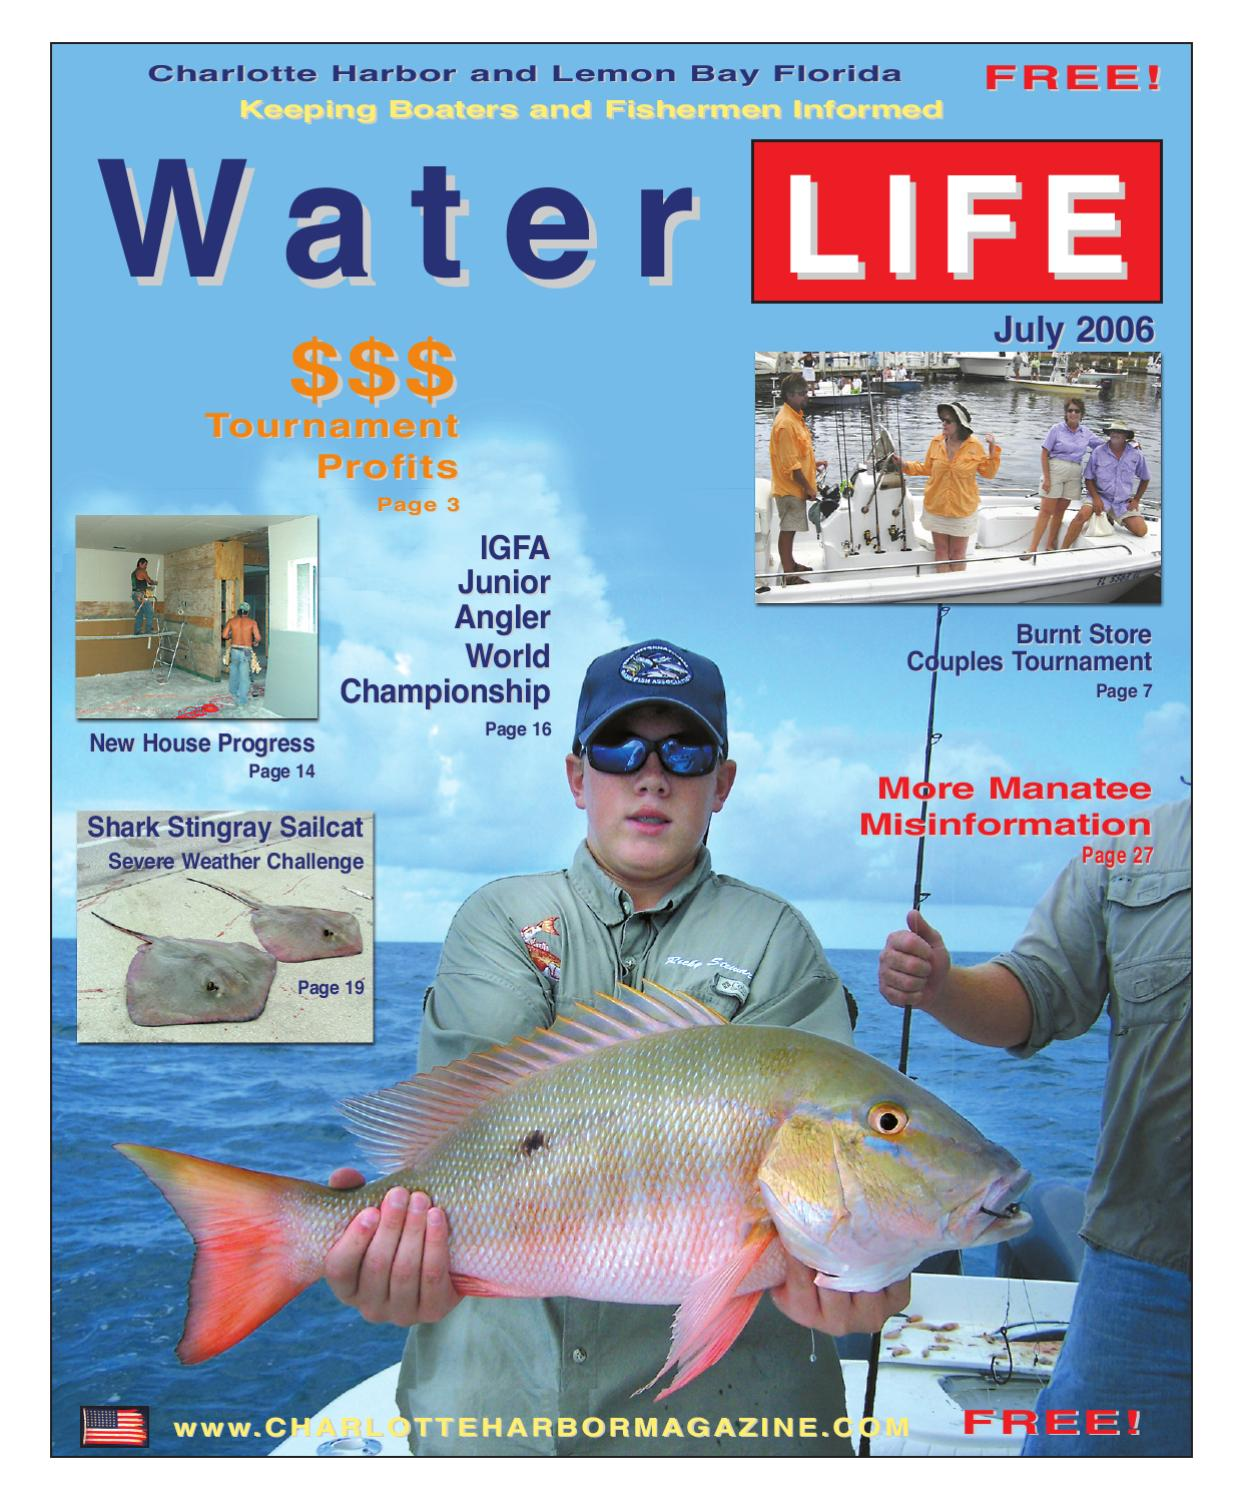 Water LIFE July 2006 by Water LIFE magazine - issuu